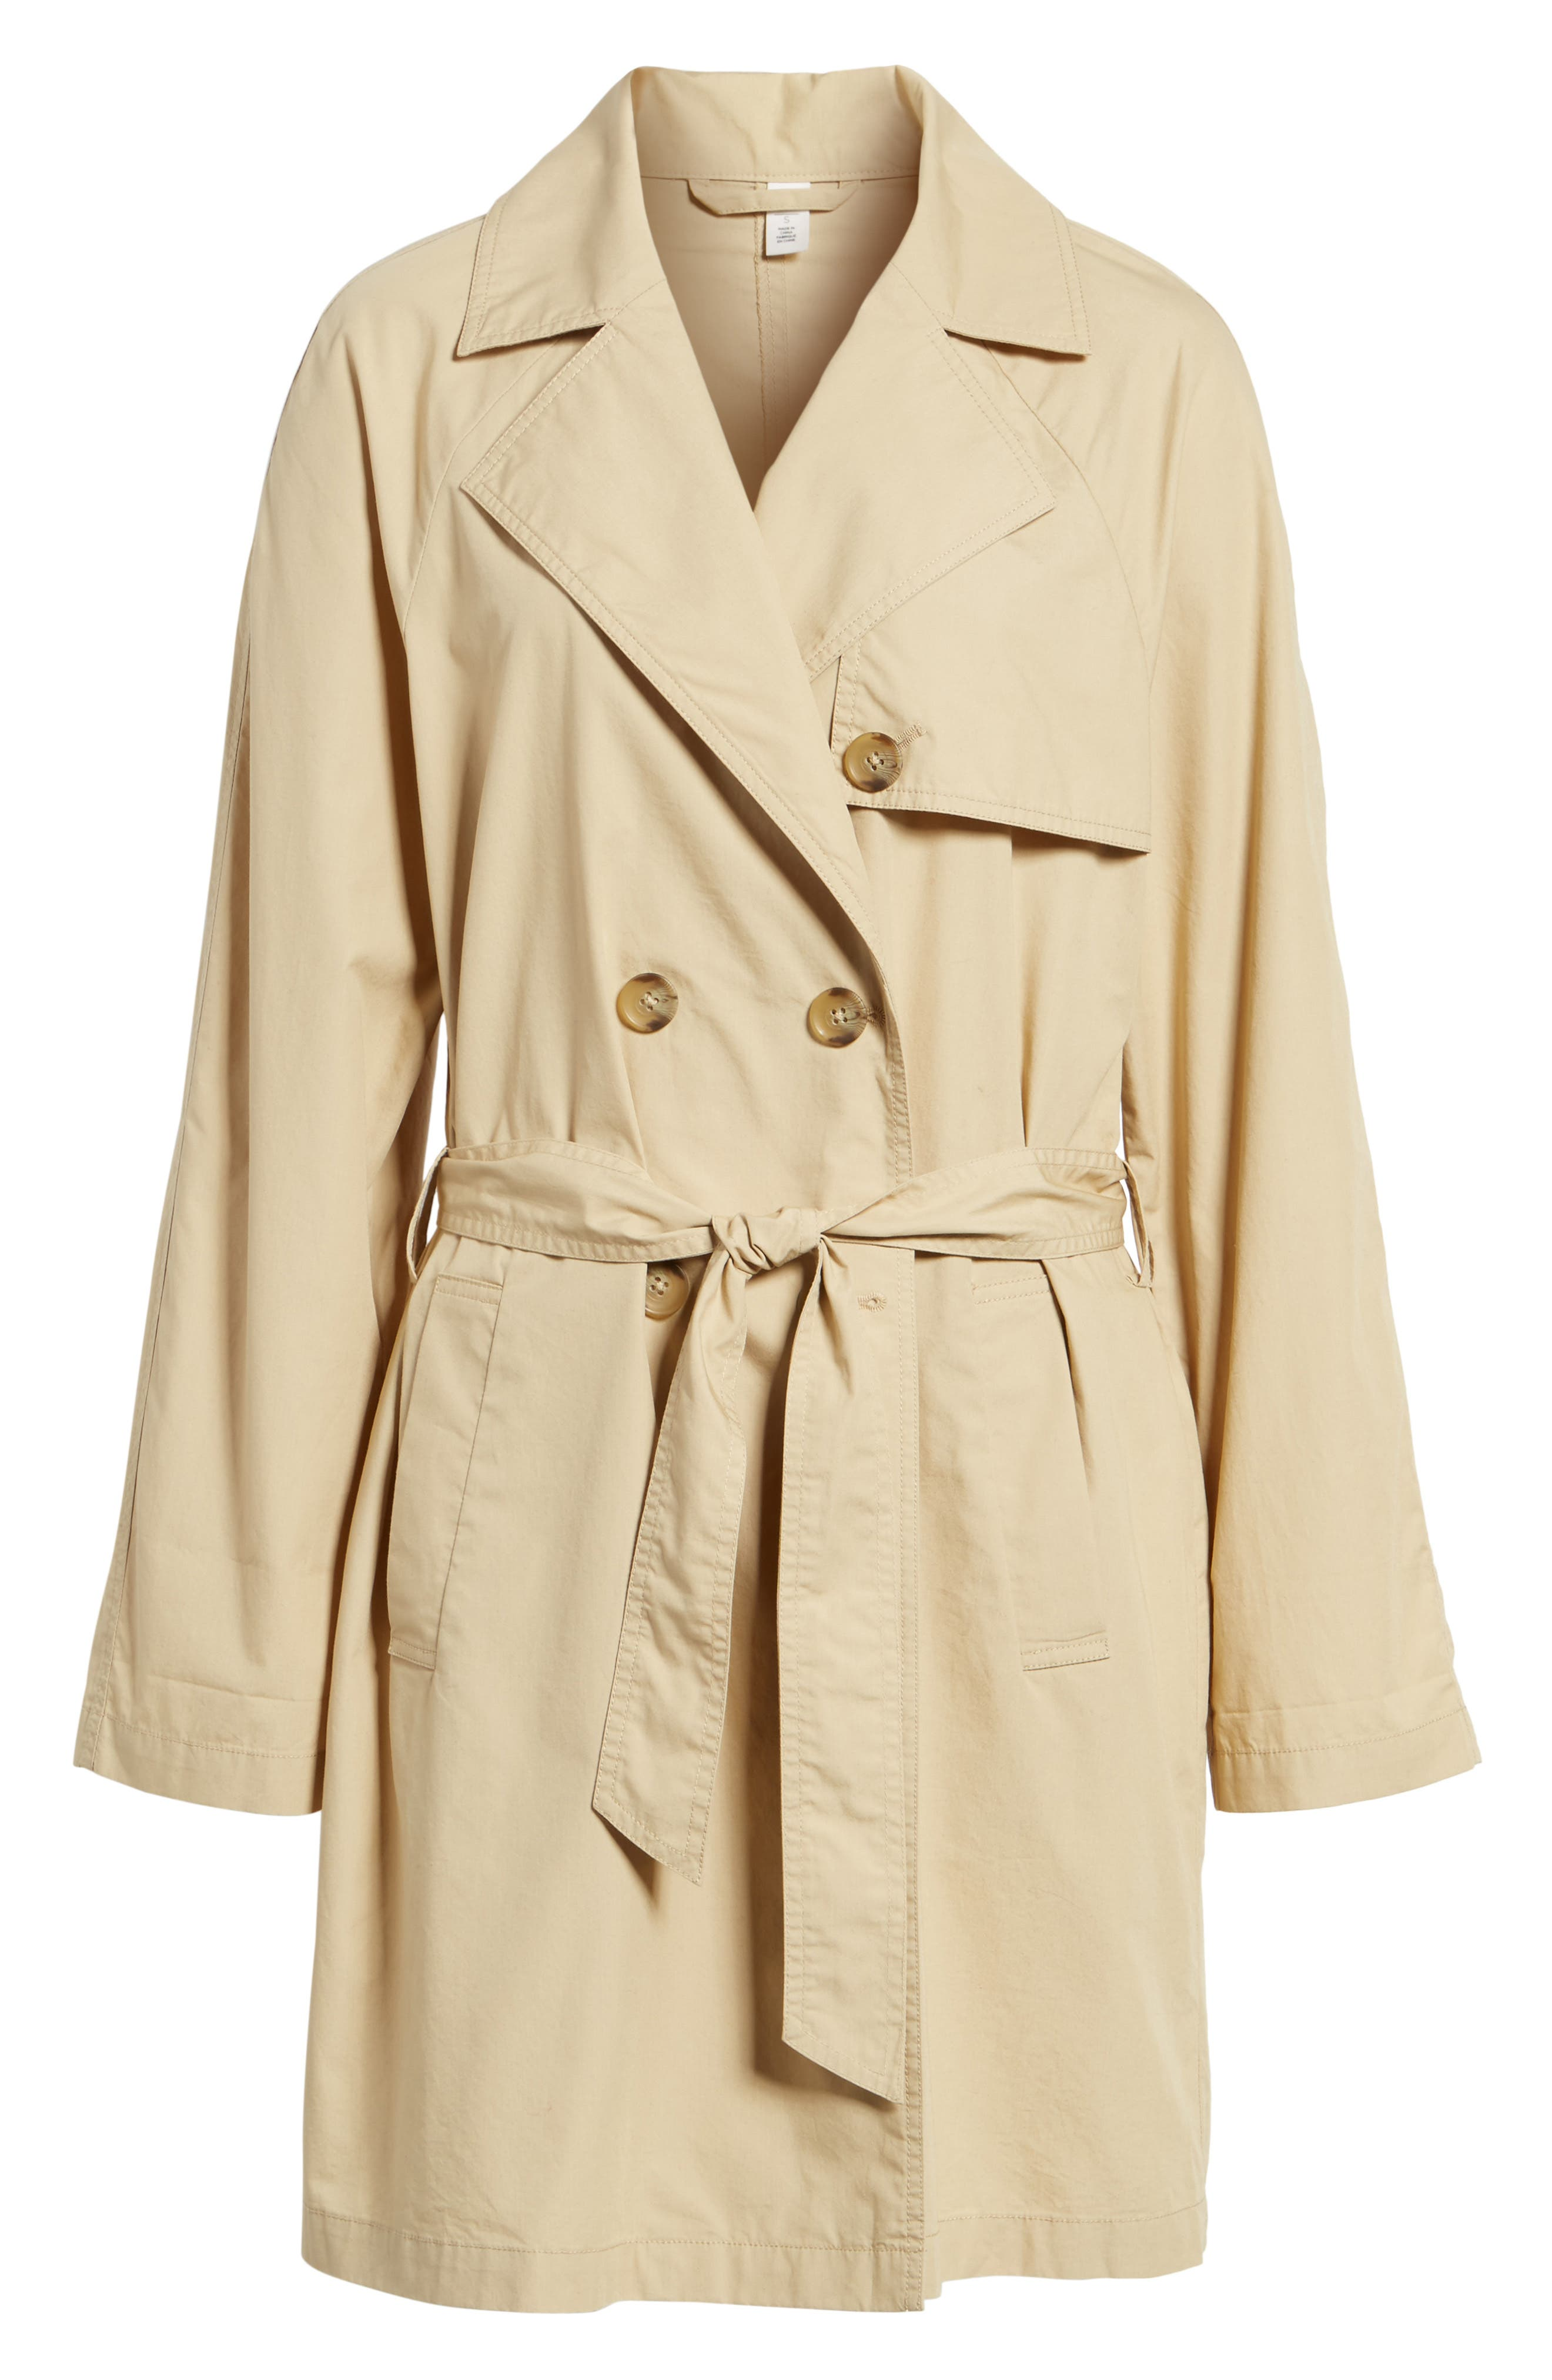 Double Breasted Belted Trench Coat,                             Alternate thumbnail 7, color,                             Beige Nougat